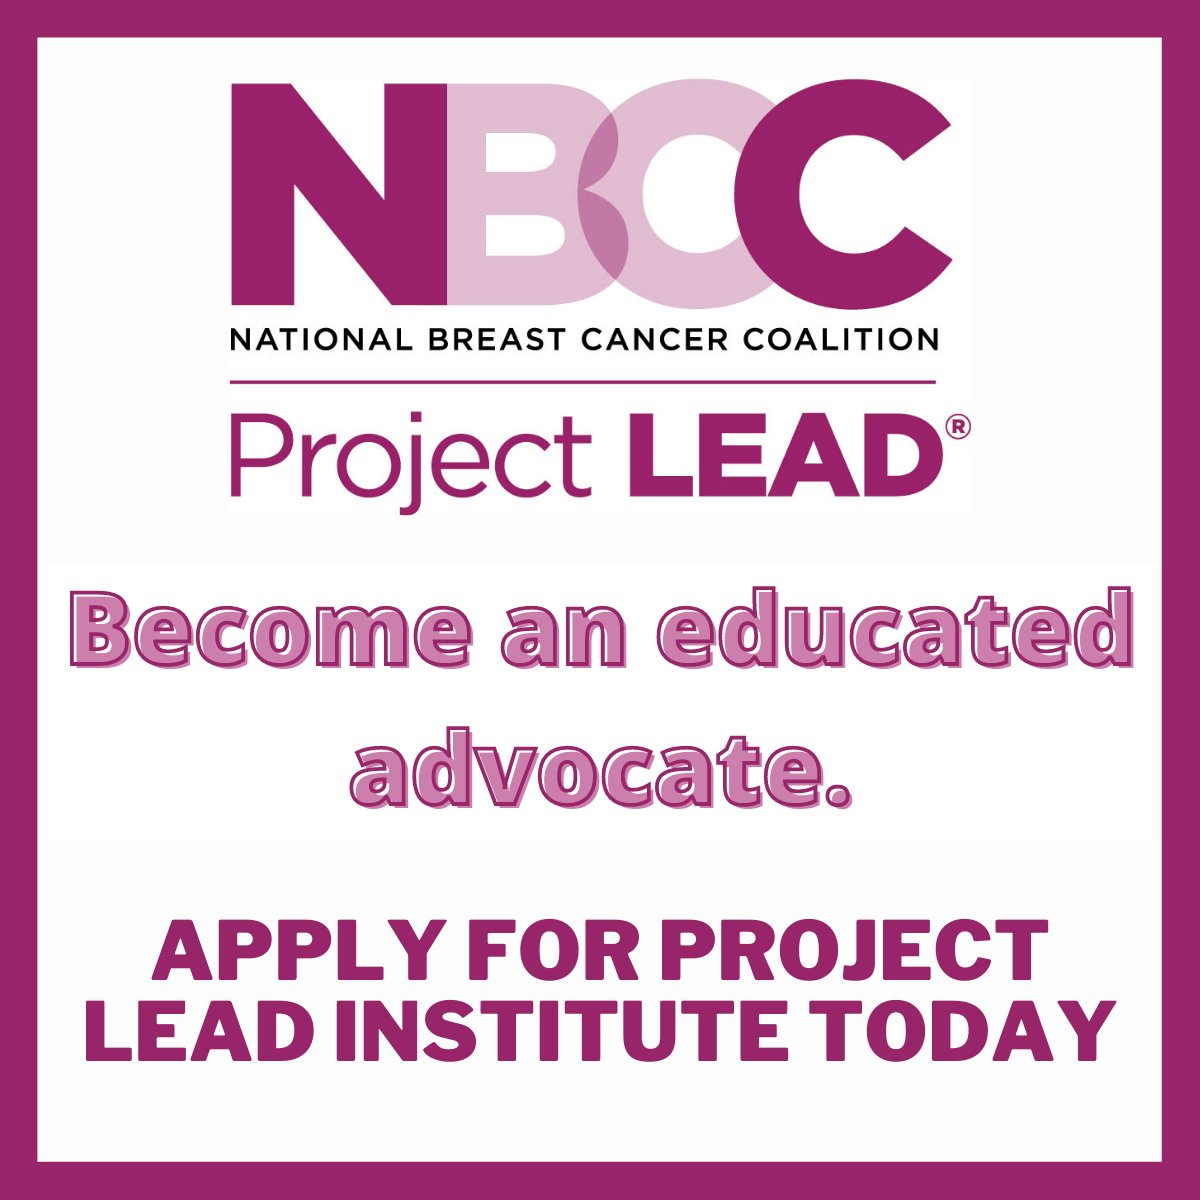 test Twitter Media - Have you submitted your application for the 2022 Project LEAD Institute? We need advocates like you to help ensure that the educated and trained patient voice is heard everywhere that decisions about breast cancer are made. Apply today! https://t.co/b5pm2gca7o https://t.co/PnvL21MKs8